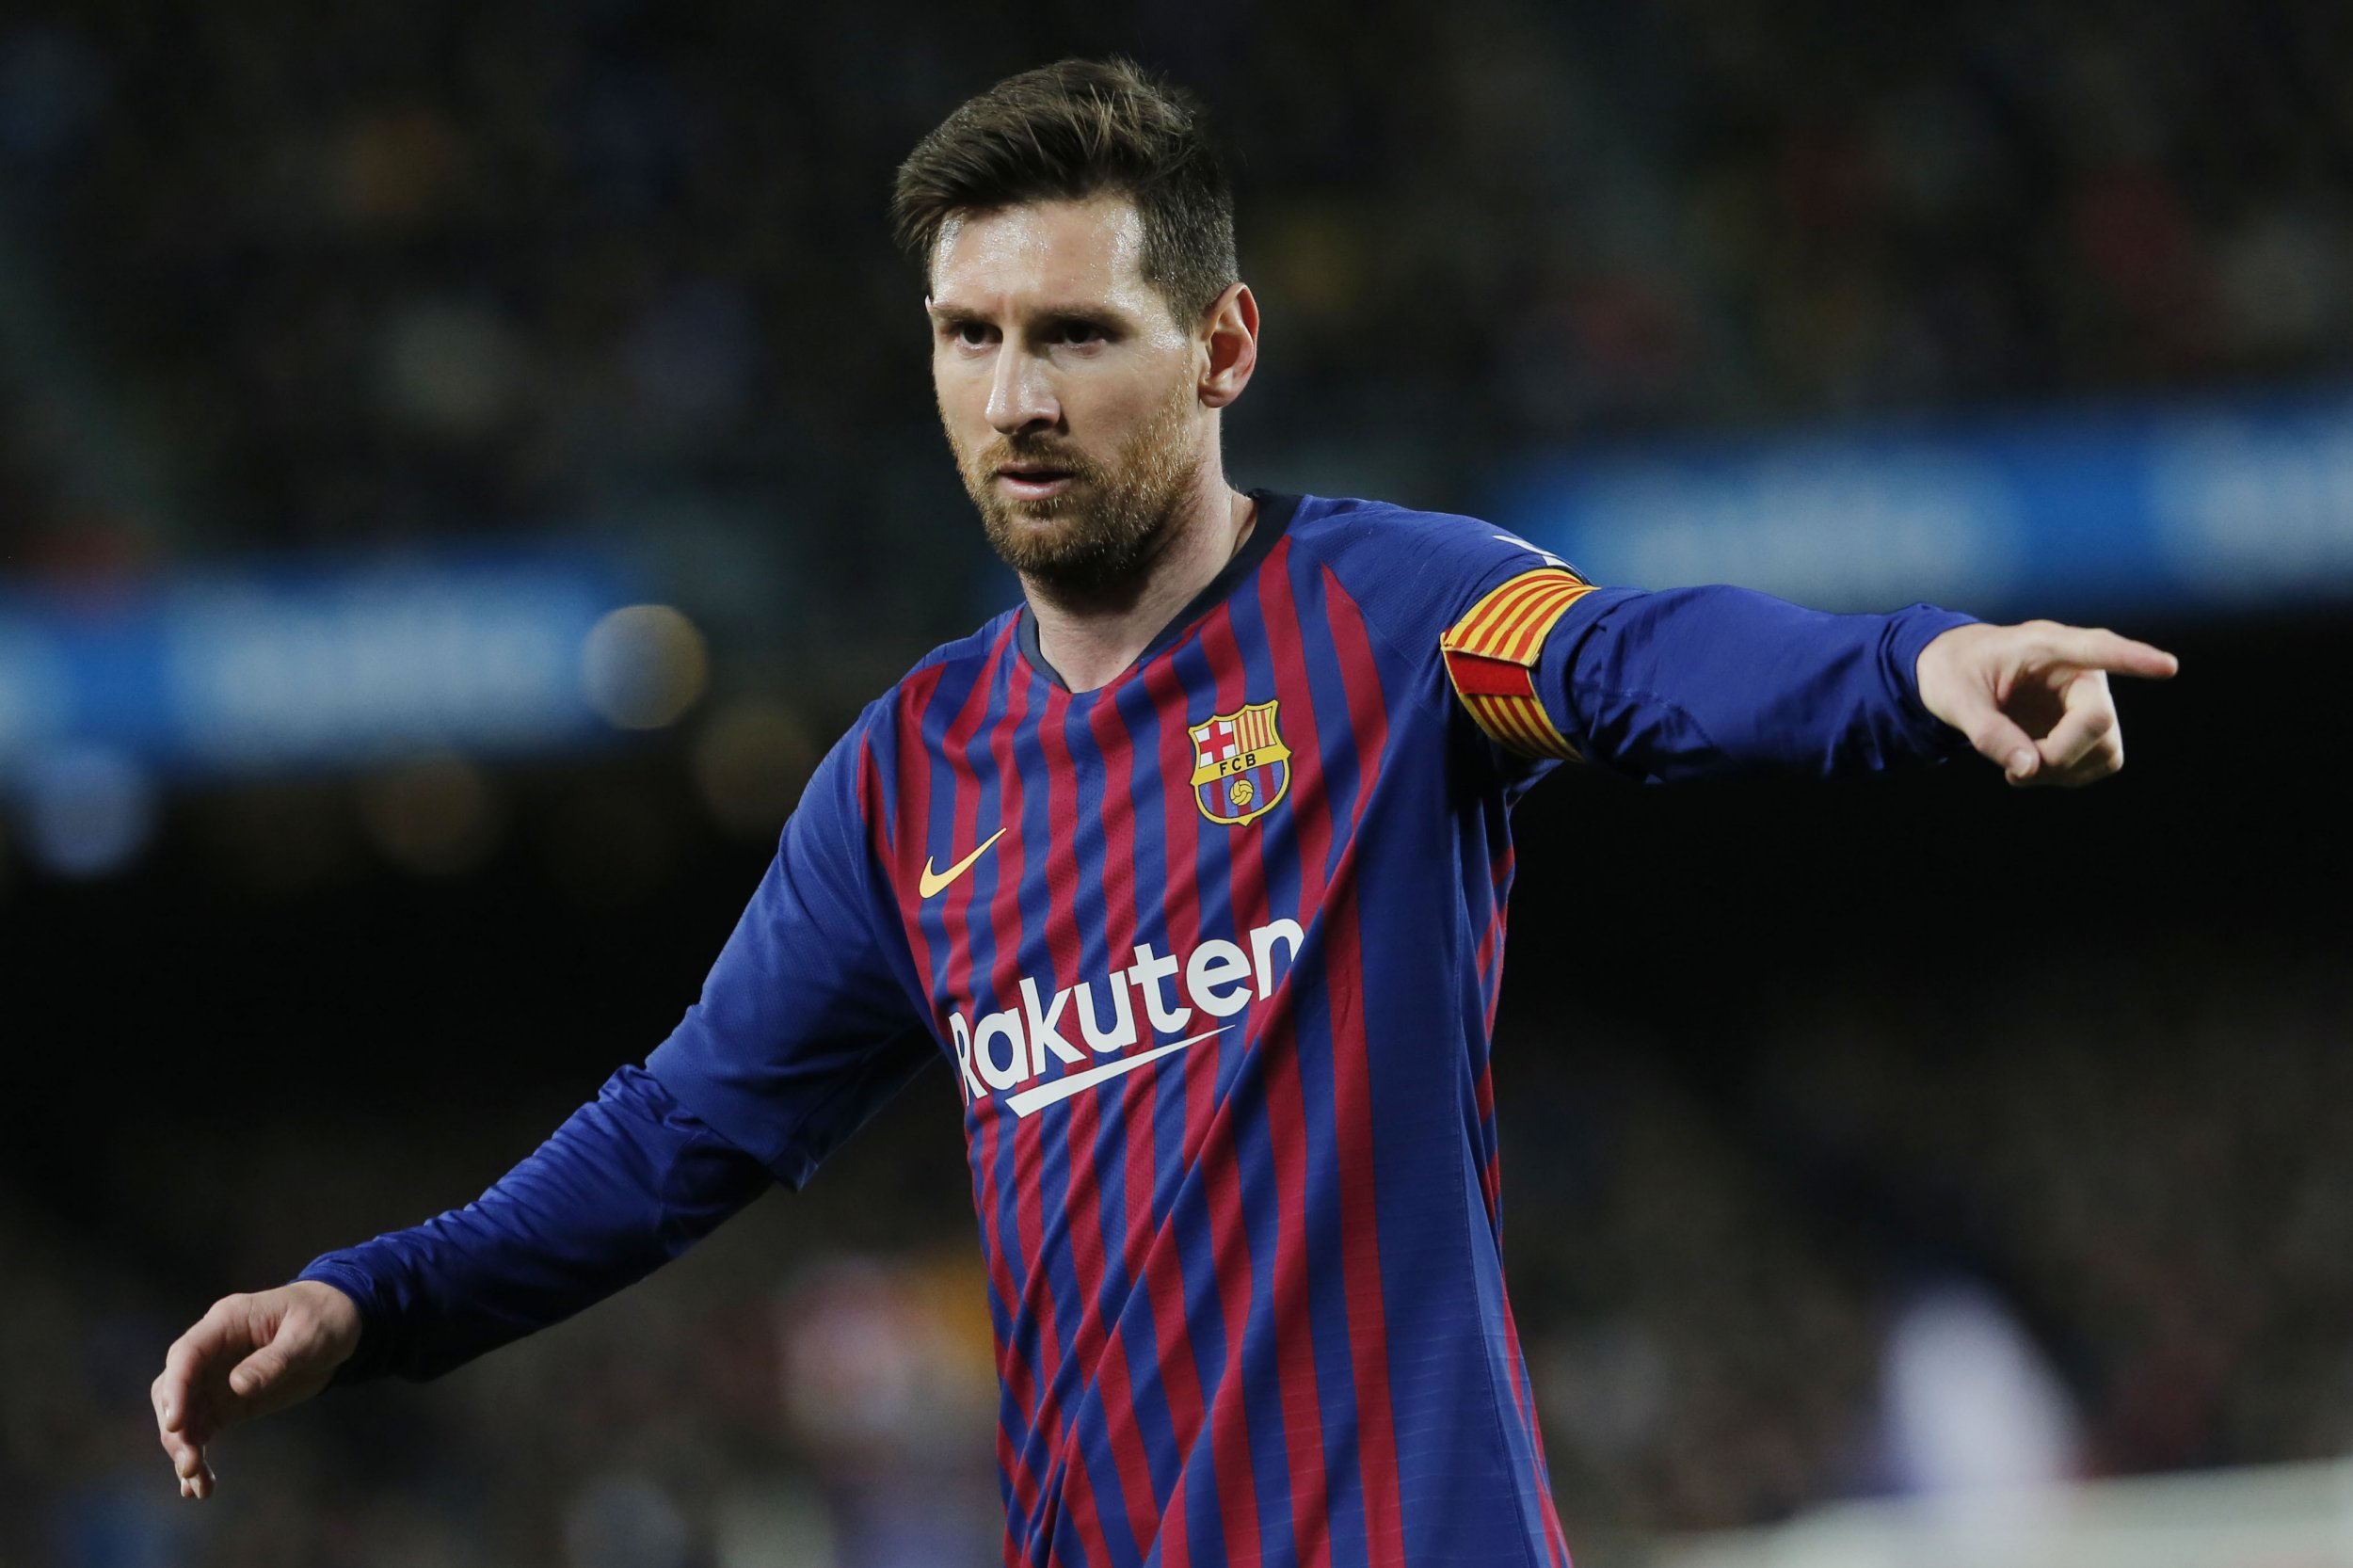 Barcelona's Argentinian forward Lionel Messi gestures during the Spanish league football match between FC Barcelona and Club Atletico de Madrid at the Camp Nou stadium in Barcelona on April 6, 2019. (Photo by PAU BARRENA / AFP)PAU BARRENA/AFP/Getty Images